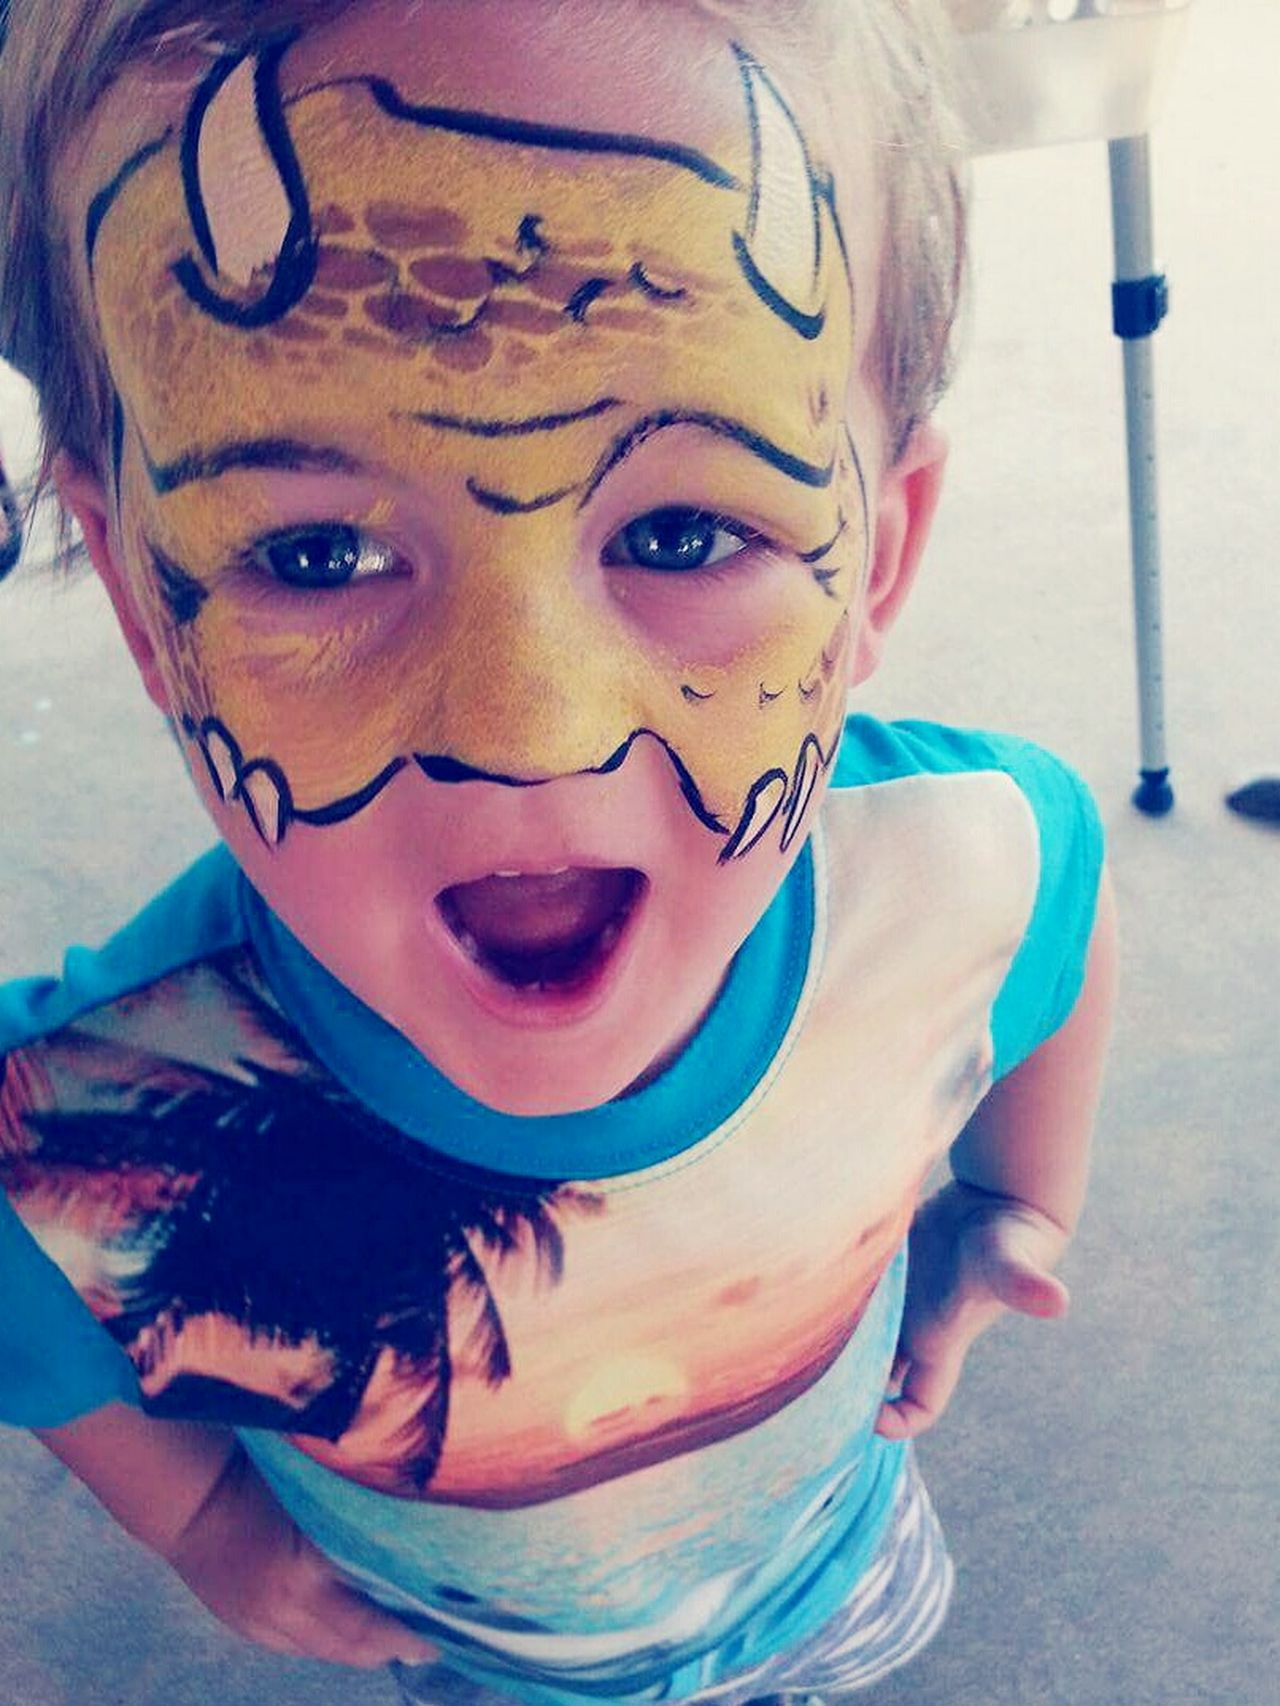 Silas Monster Roar Facepaint Facepainting My World Love Motherhood Toddlerlife Toddler Life Adorable Son Childhood Toddler  Adore